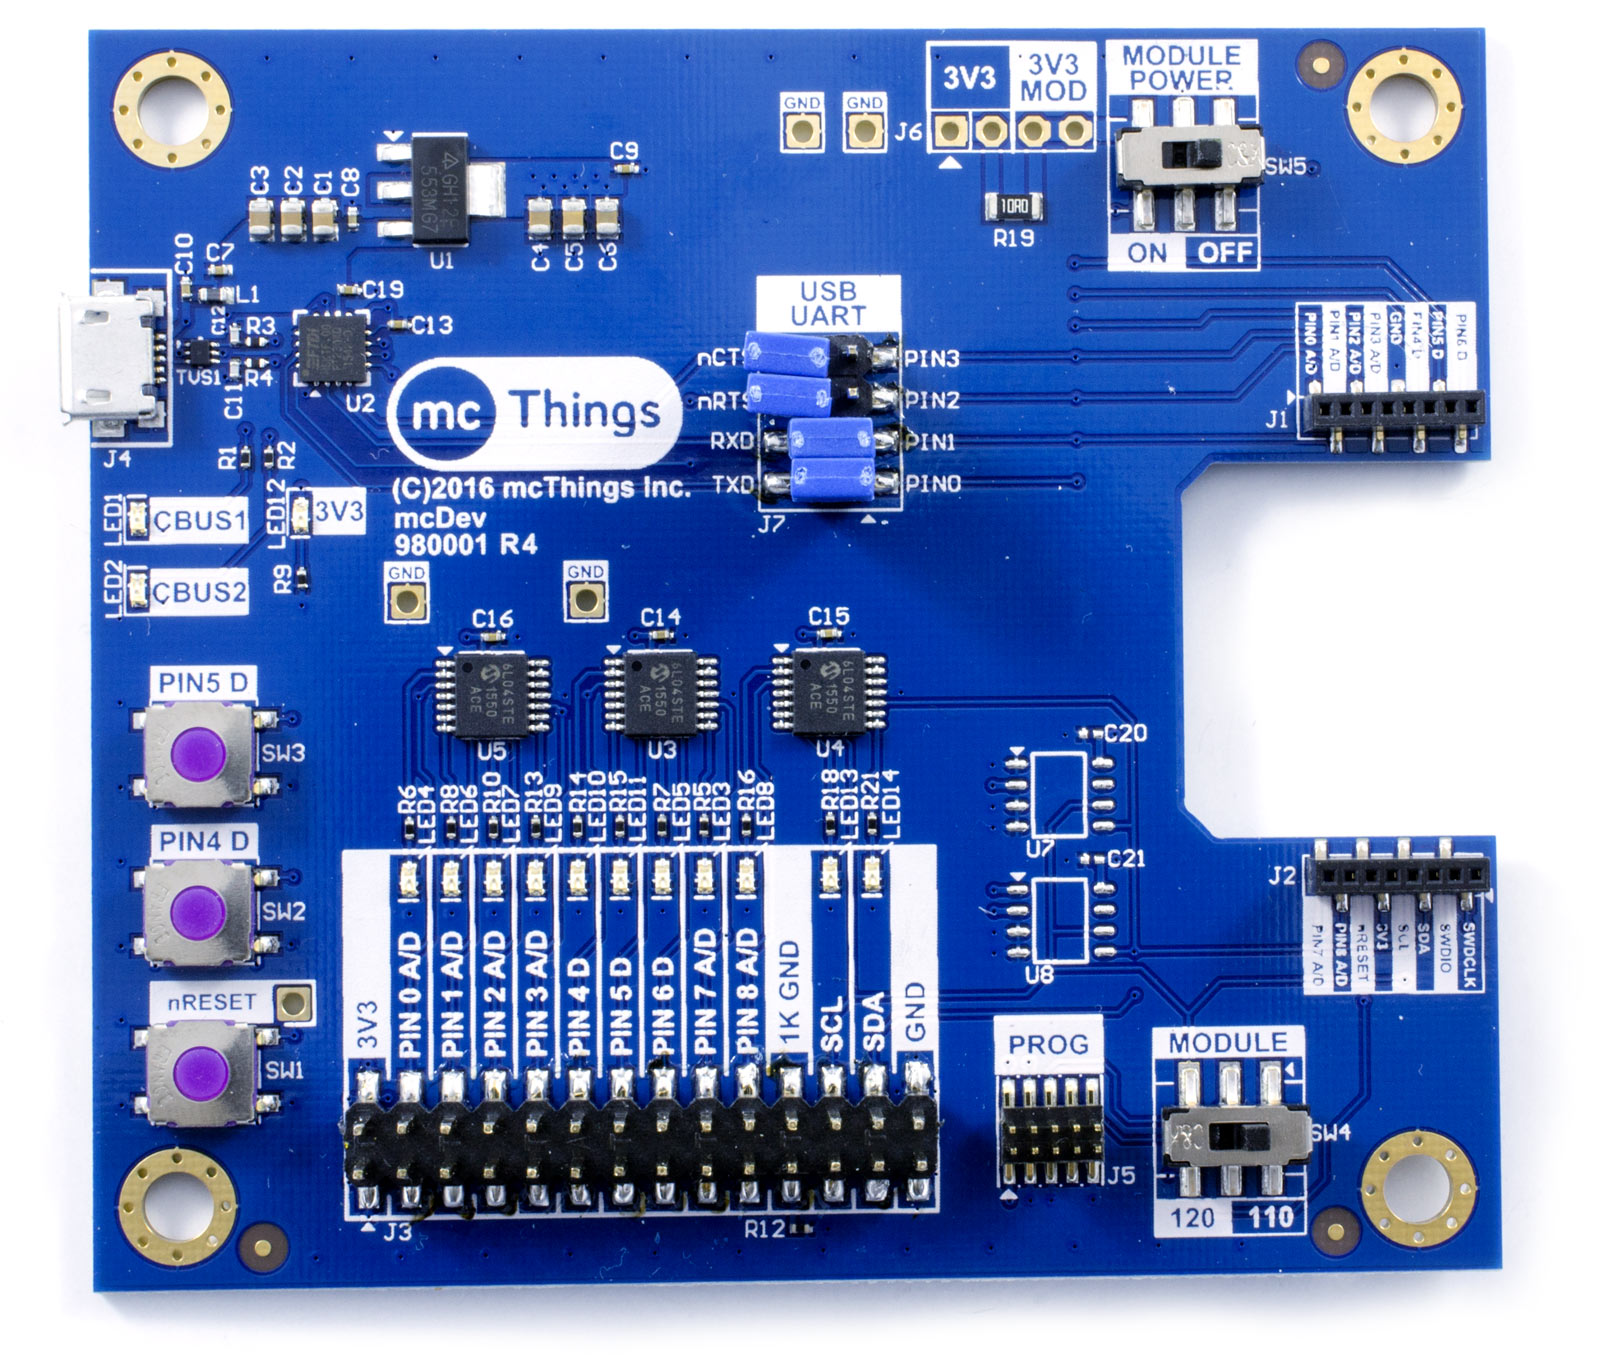 mcDev IoT Prototyping Development Board for mcModules